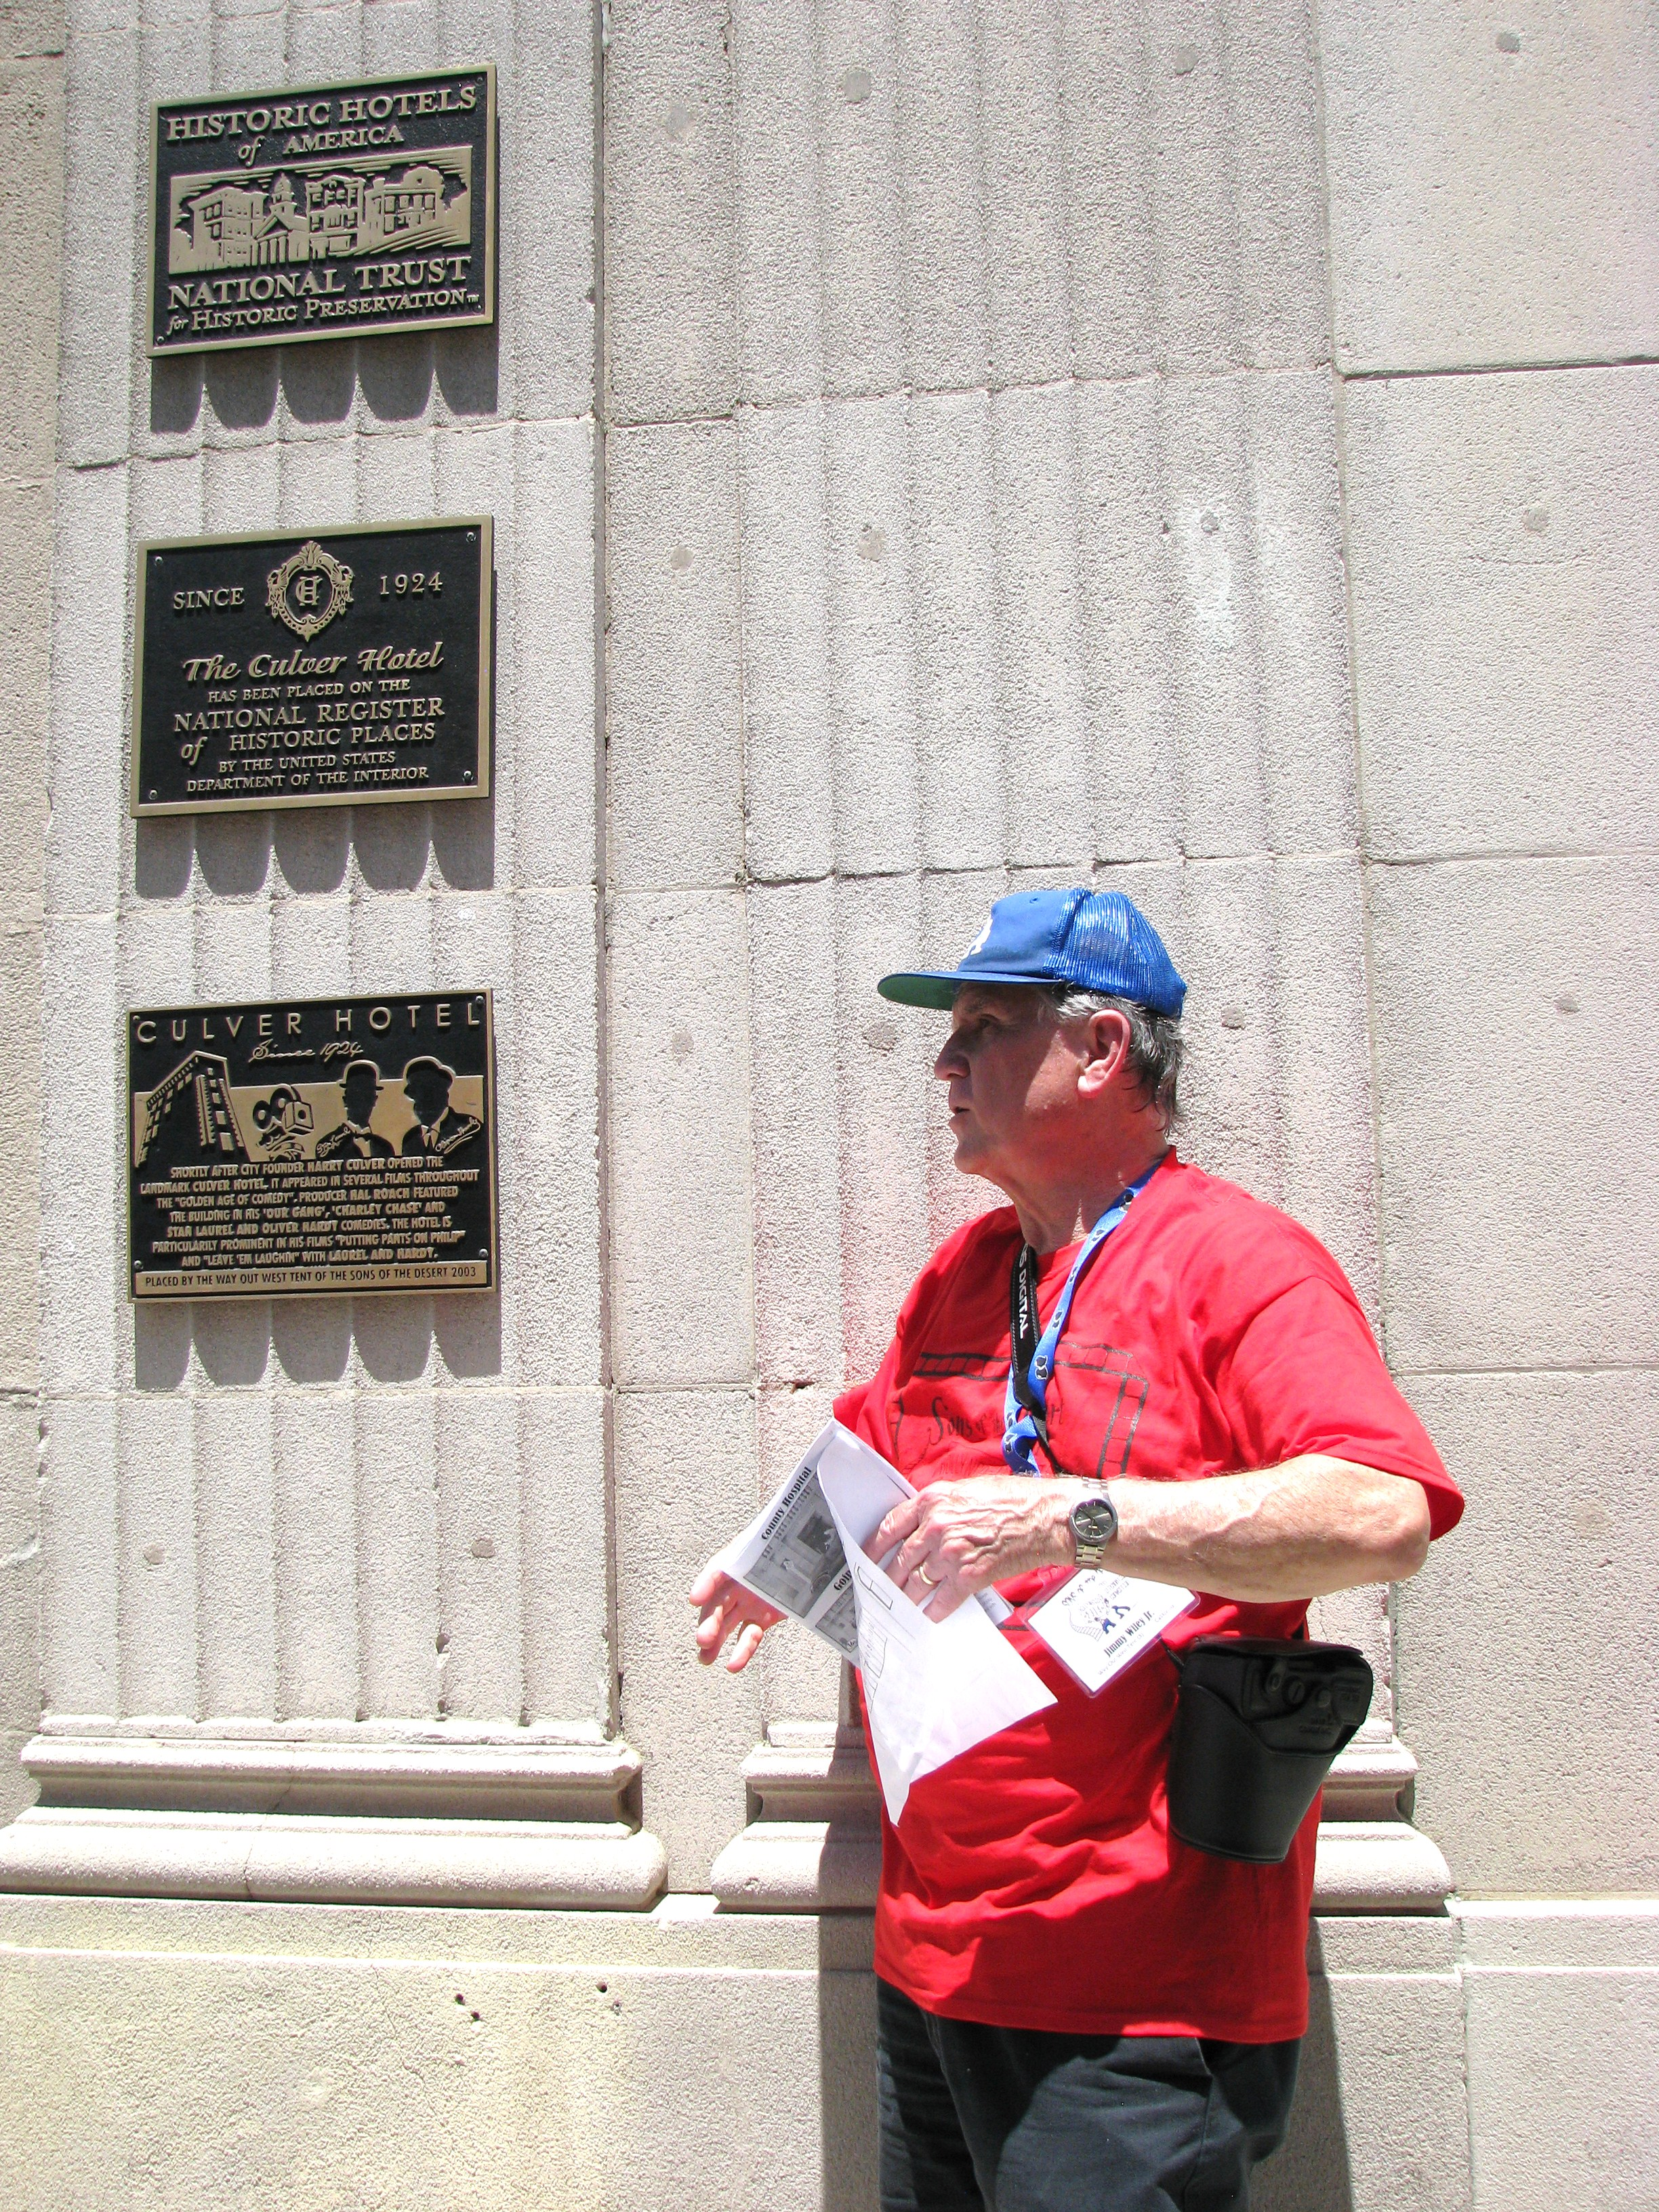 Tour guide Jimmy Wiley shows the historic plaques outside the Culver Hotel, one which was placed by the Way Out  West Tent